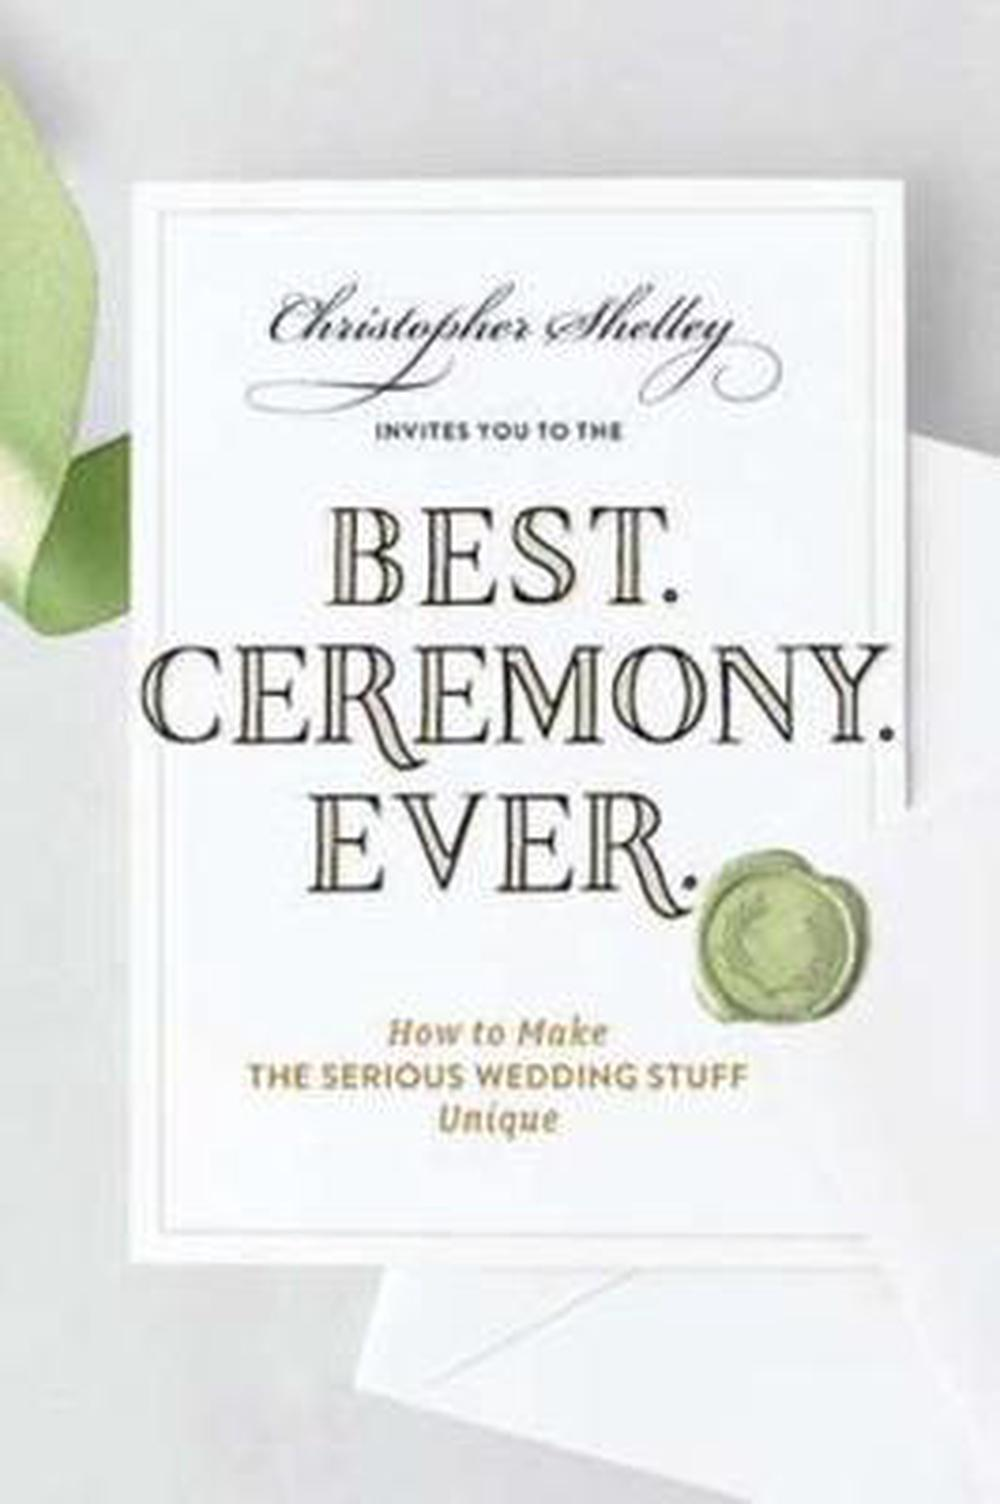 Best. Ceremony. Ever. - How to Make the Serious Wedding Stuff Unique